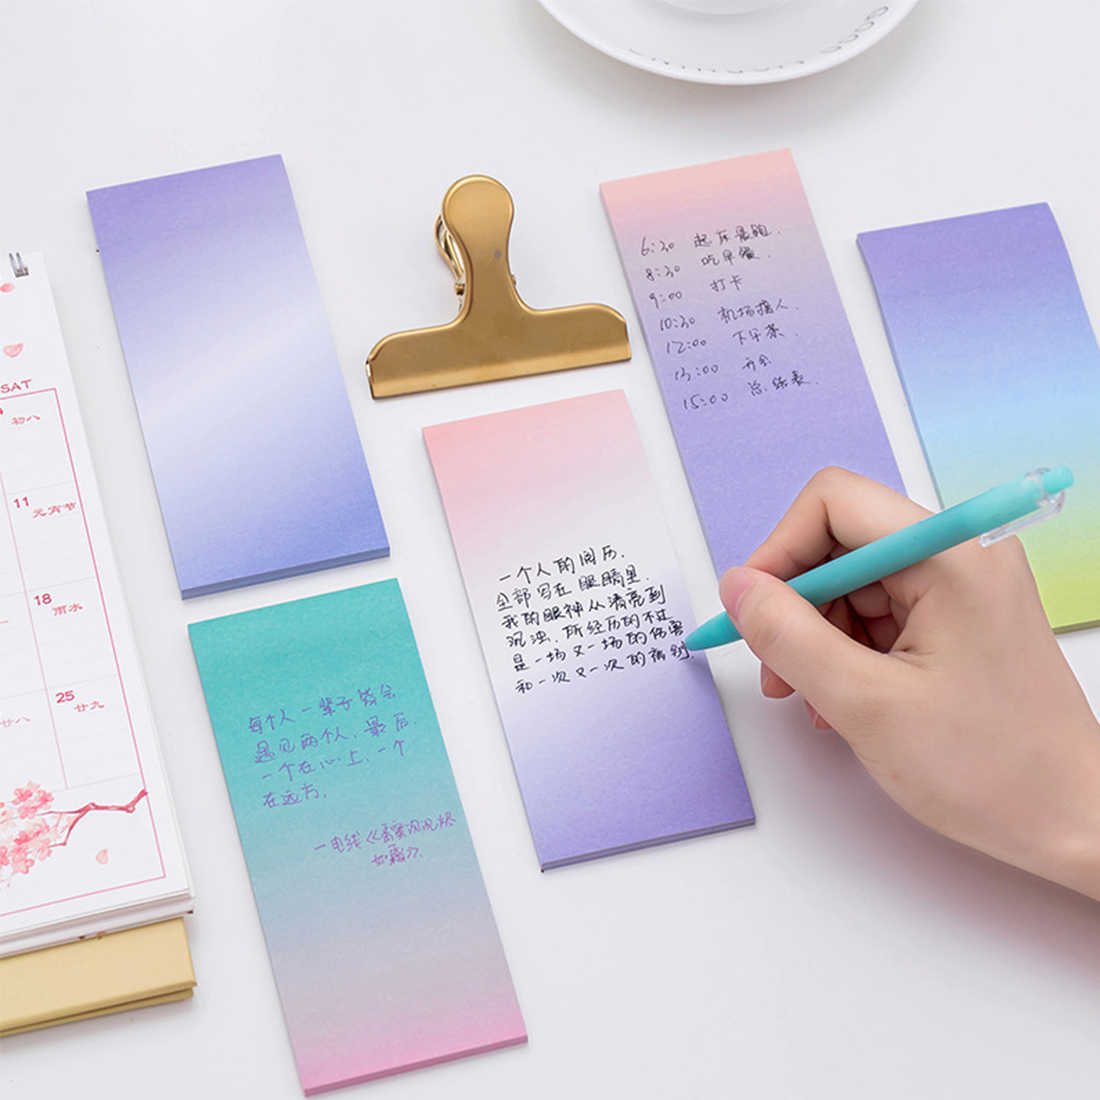 FangNymph 1 Pcs Cute Rainbow Memo Pads Decoration Stickers Self-Adhesive Stationery Sticky Notes N Times Paste